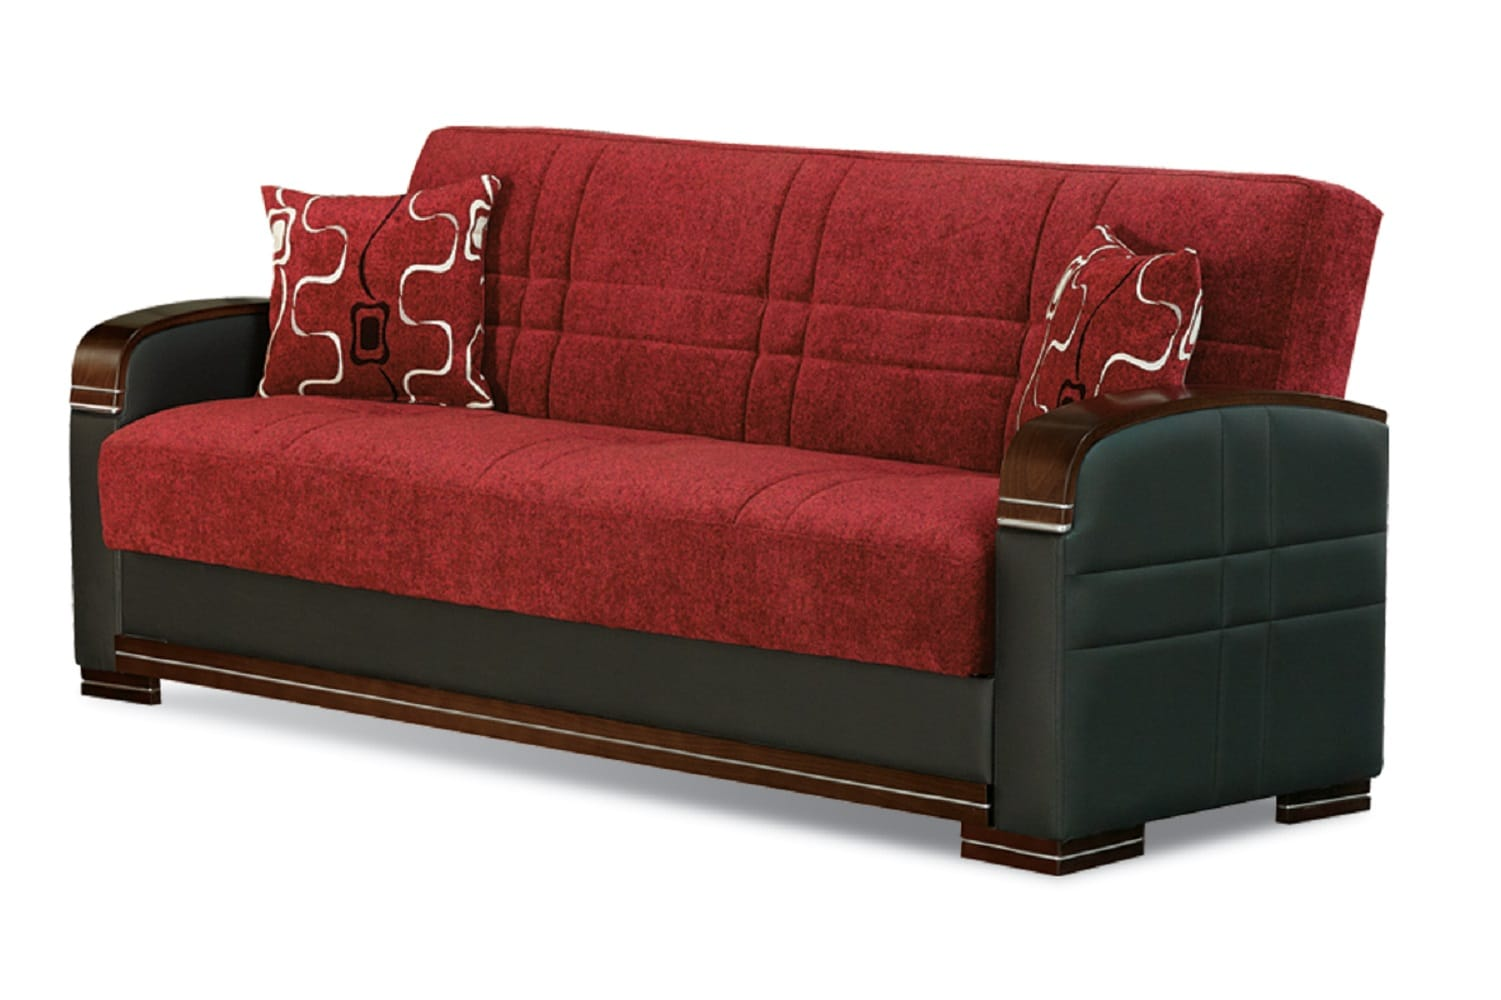 Indiana Red Fabric Sofa Bed By Empire